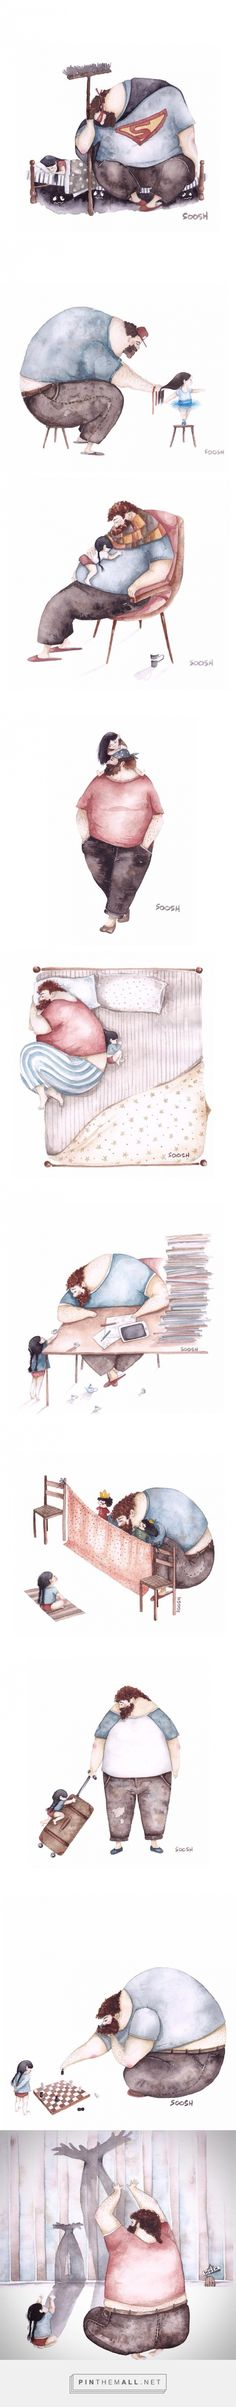 Illustrations about The relationship between Do-it -all Dads And Their Little Girls - Snezhana Soosh, a young painter, has drew beautiful watercolor paintings Children's Book Illustration, Watercolor Illustration, Watercolor Paintings, Art Graphique, Art Plastique, Illustrators, Art Drawings, Little Girls, Dads